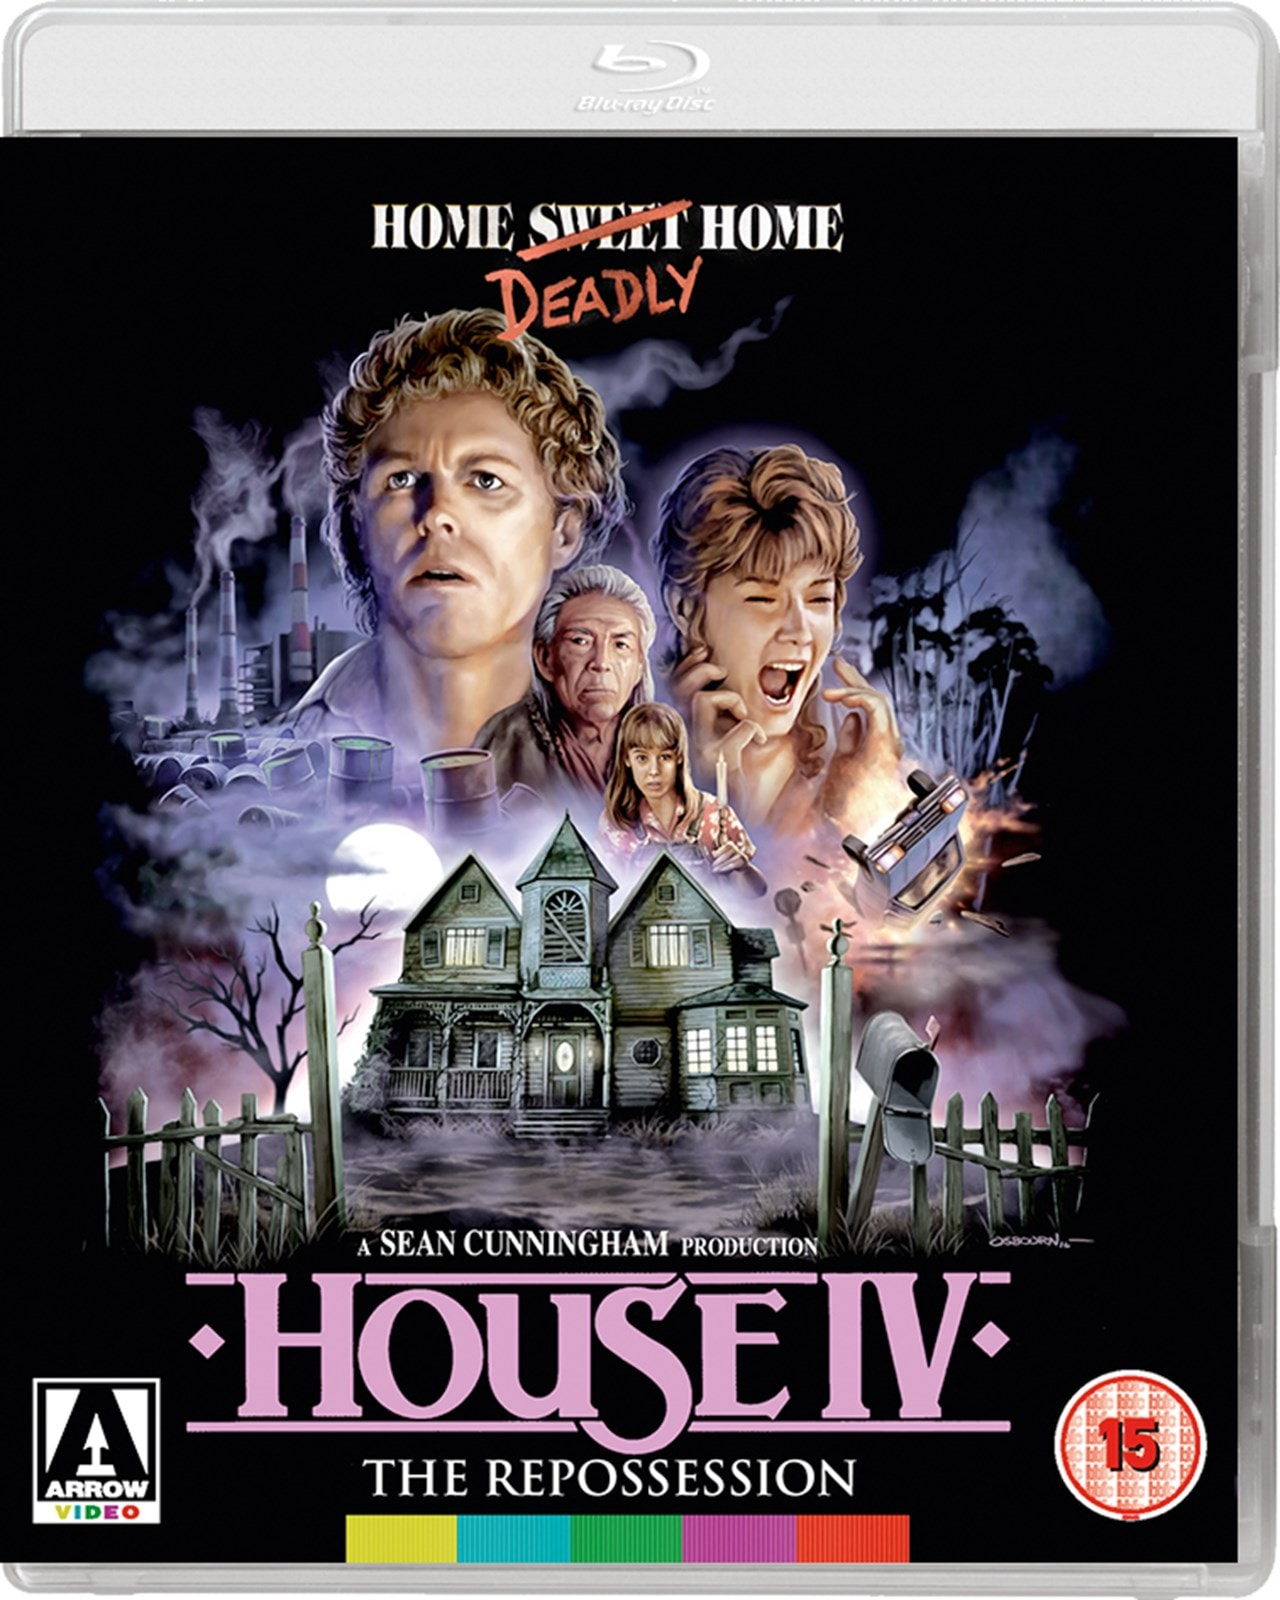 House IV - The Repossession - 1